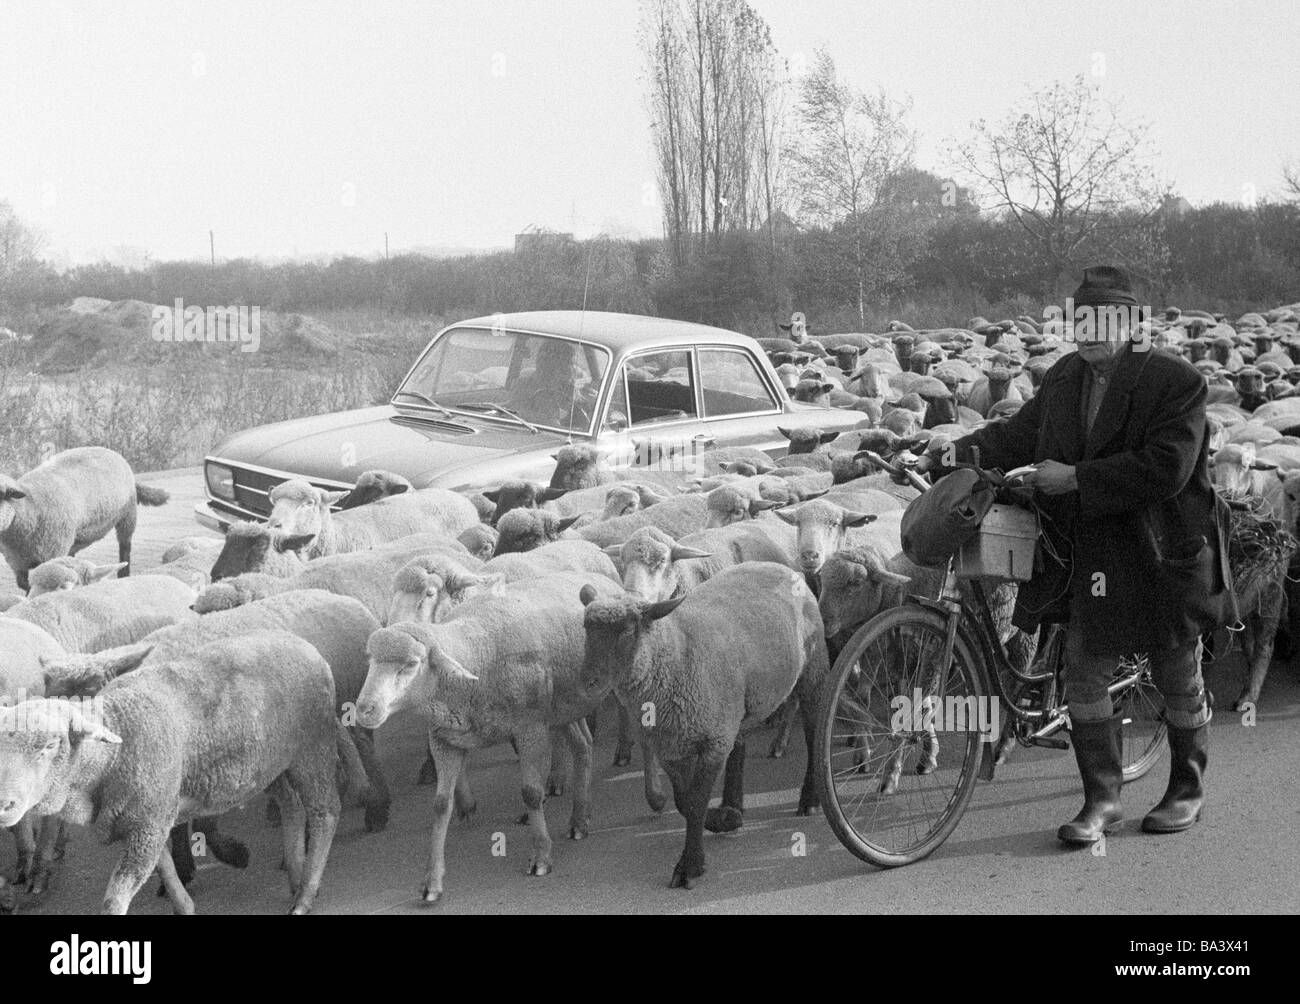 Seventies, black and white photo, human and animal, shepherd and flock of sheep, aged 60 to 80 years, passenger - Stock Image